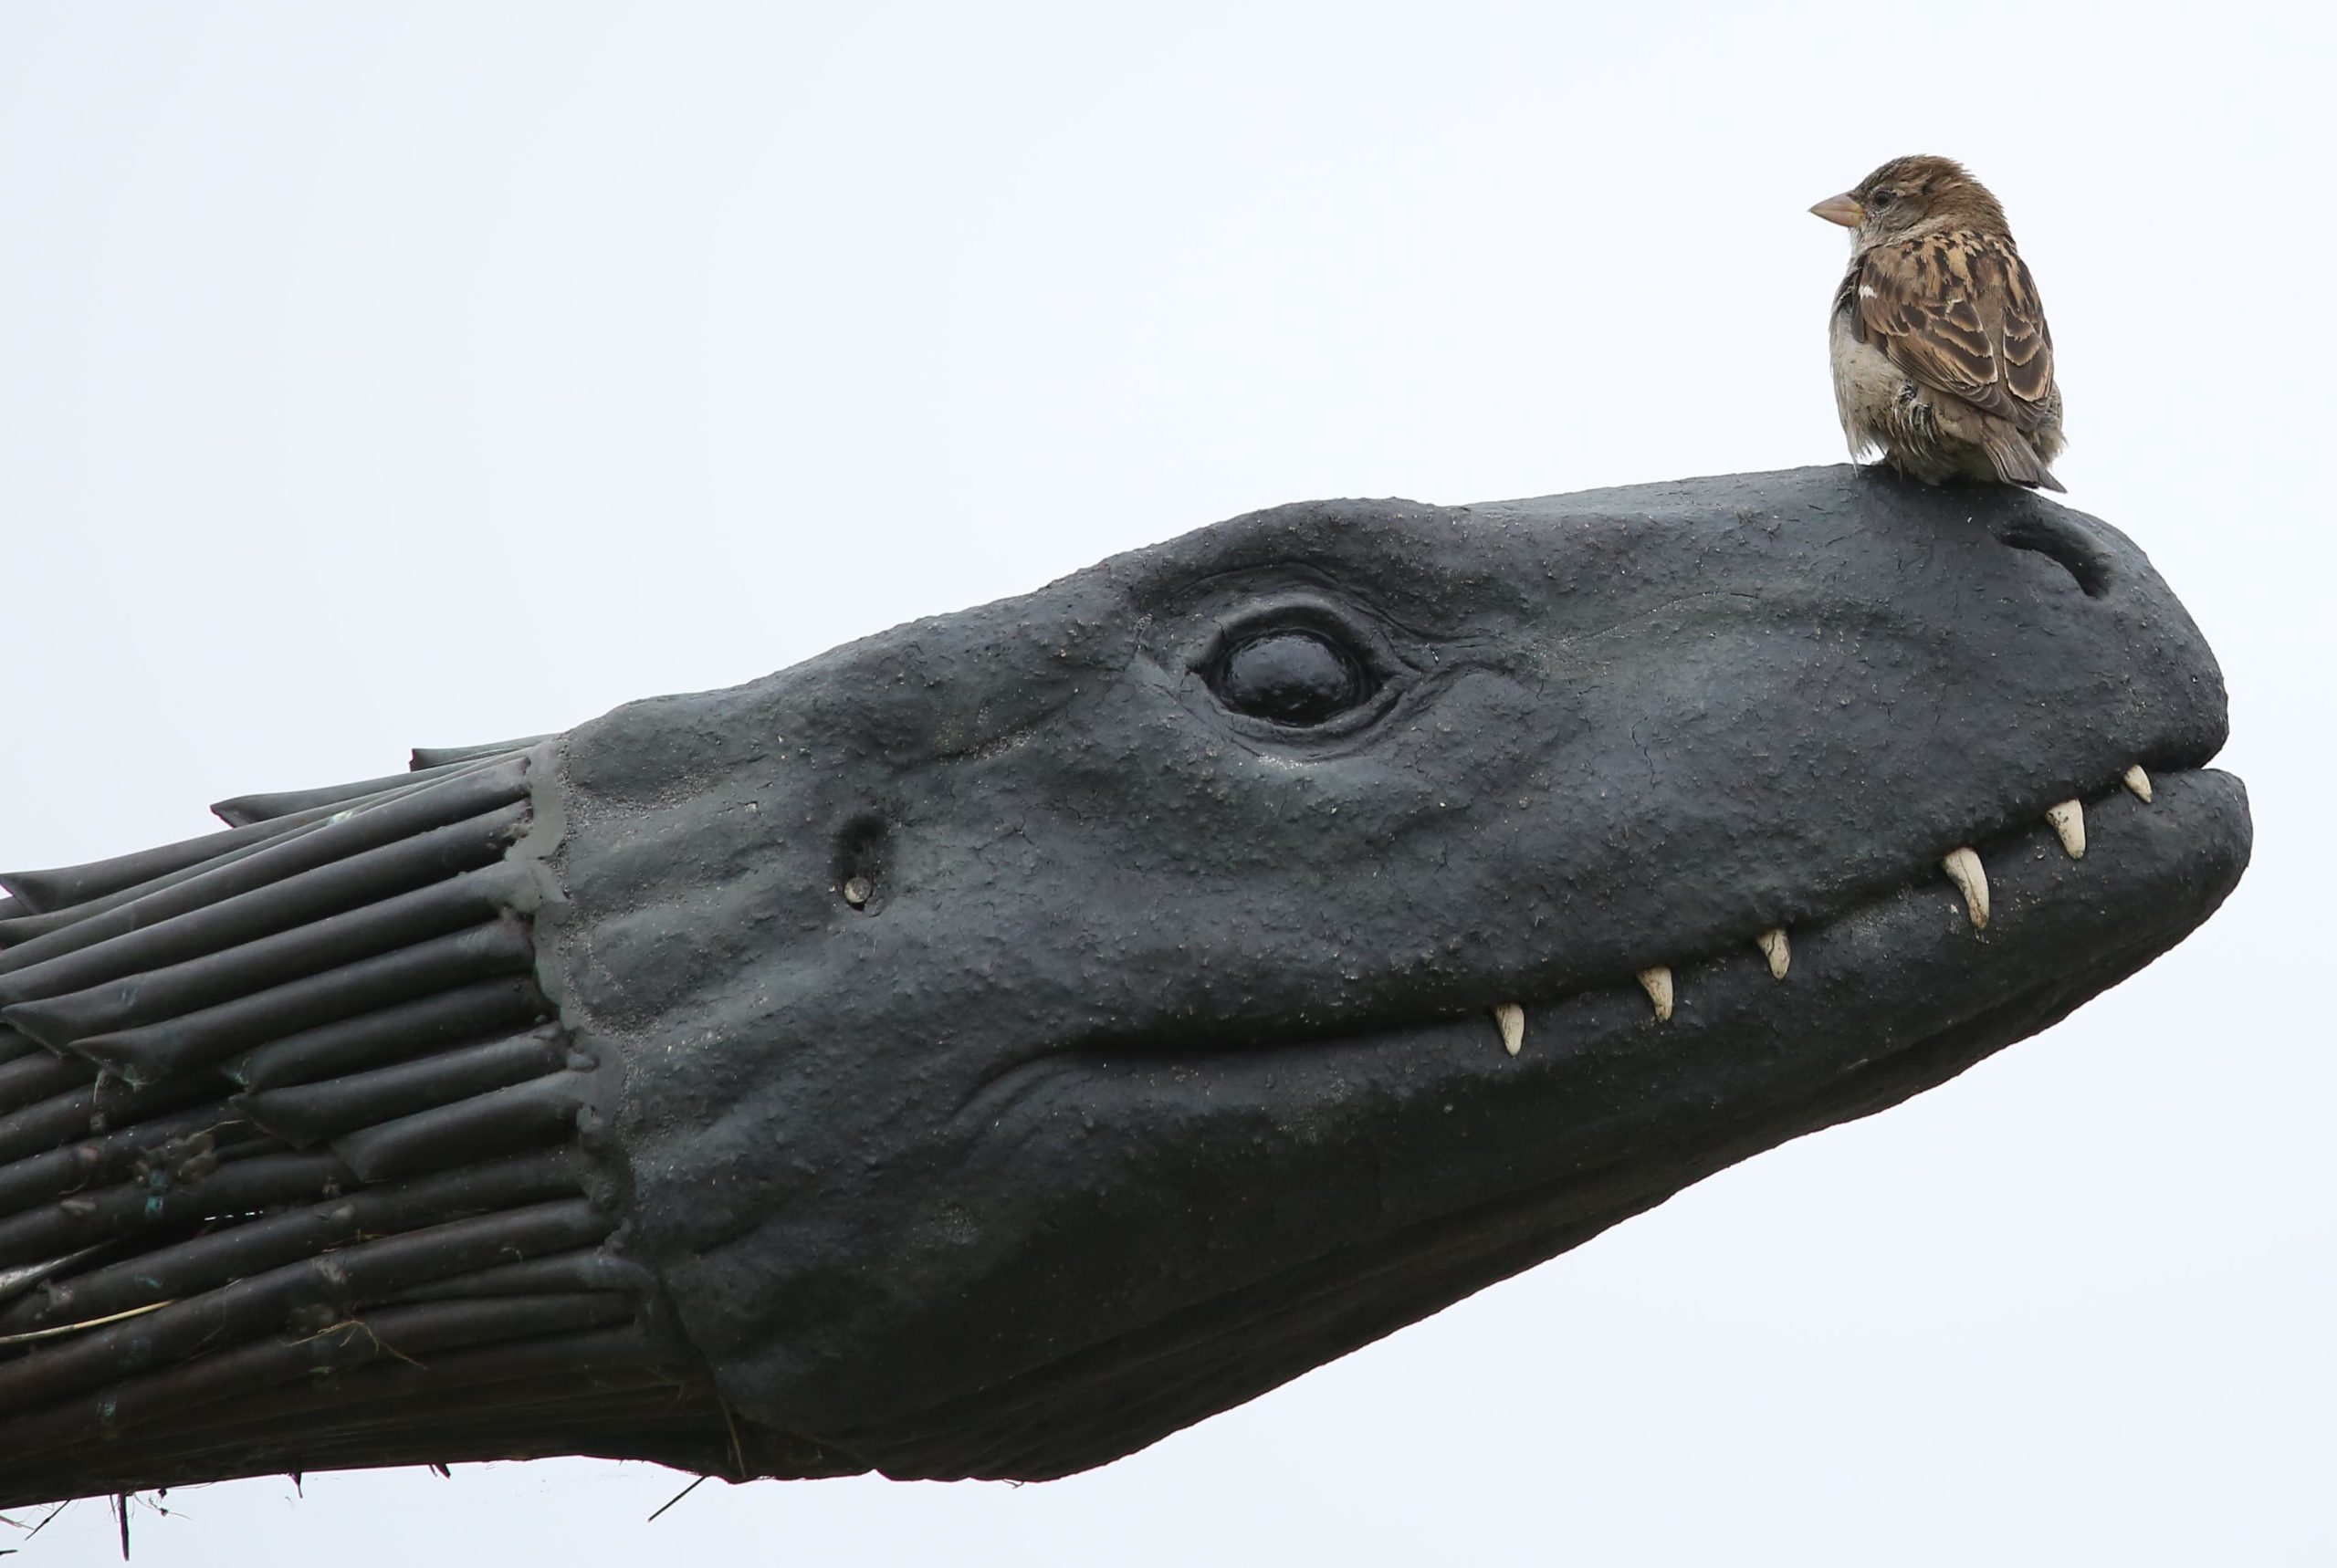 The sparrows' nest in the Loch Ness Monster head